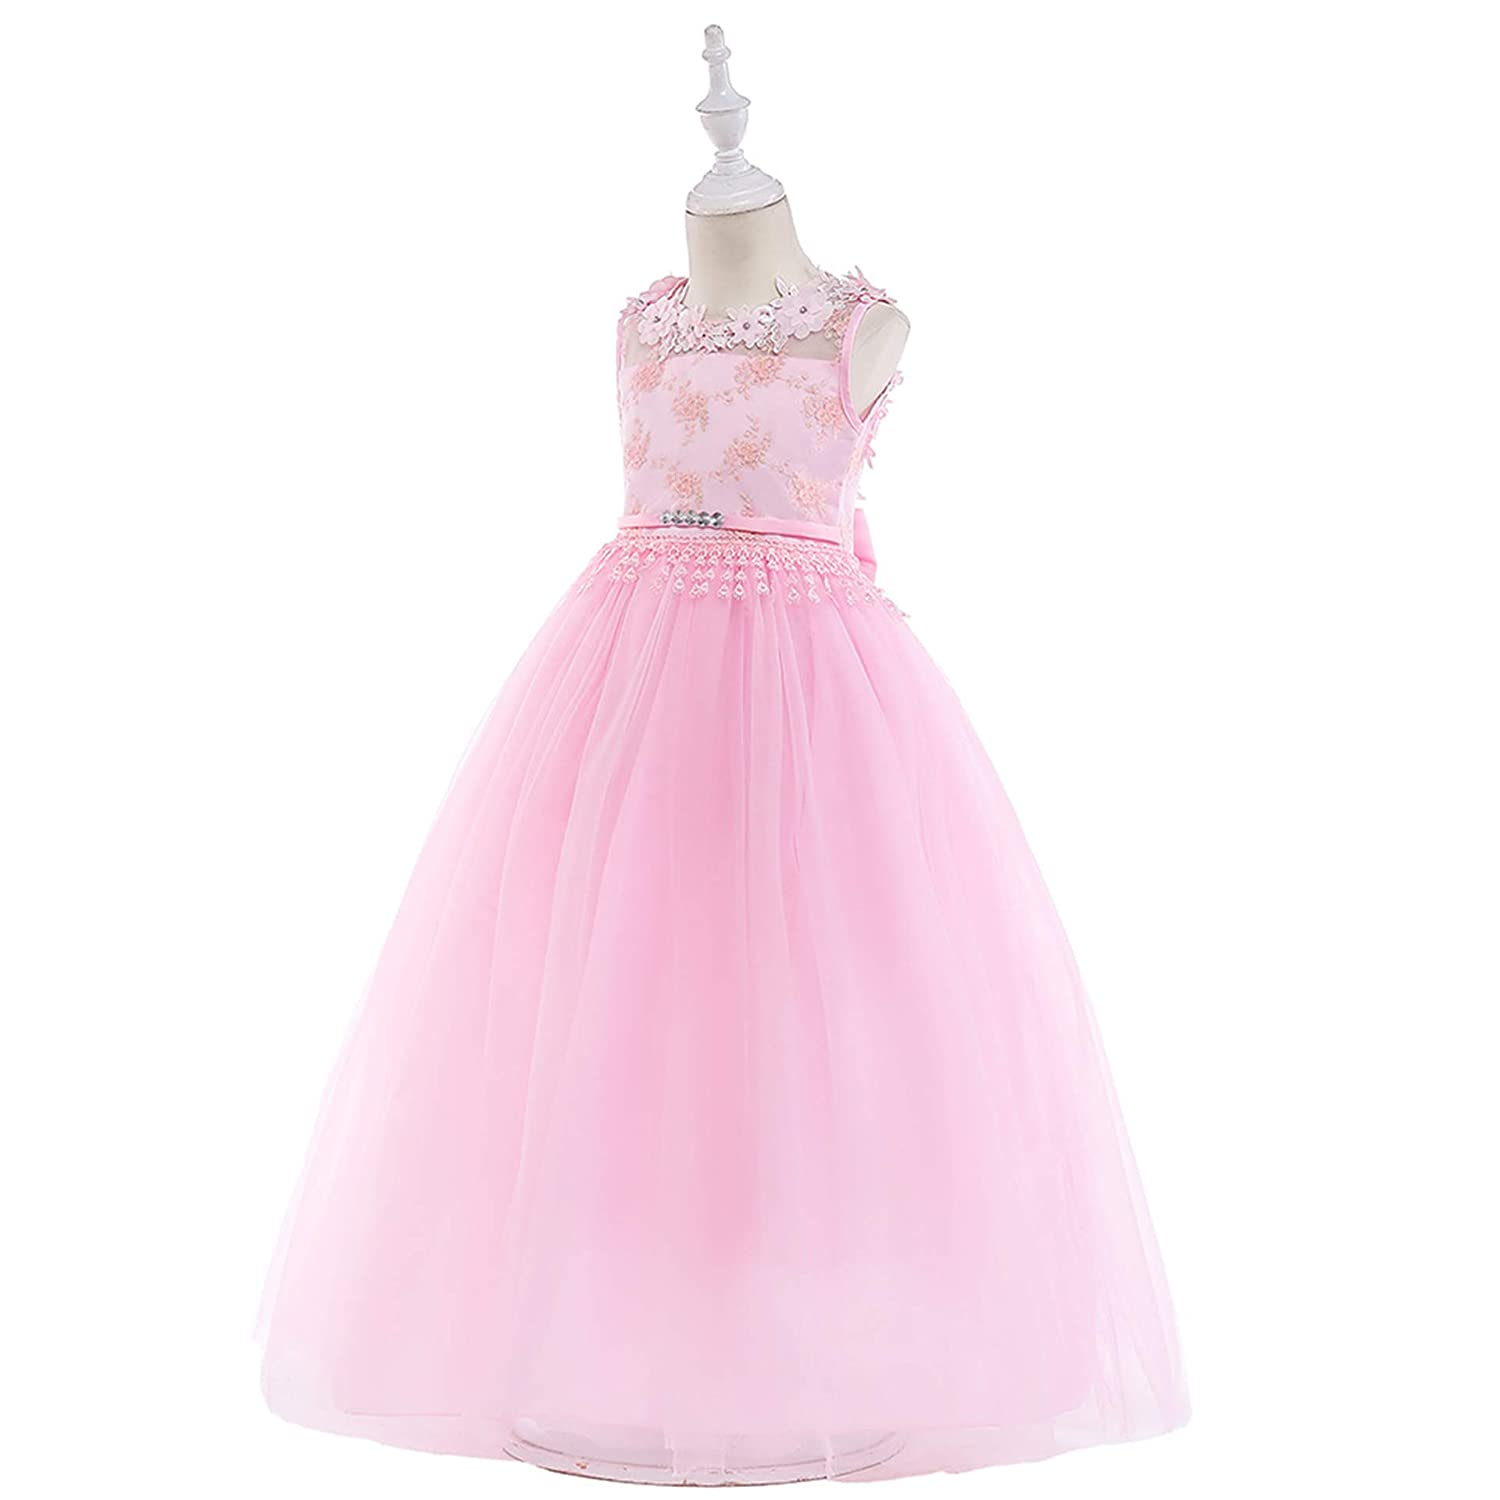 1085e08cf31 Amazon.com  NOMSOCR Kids Lace Costume Long Dress Girl Prom Ball Gown  Christmas Party Dresses (4-5 Years